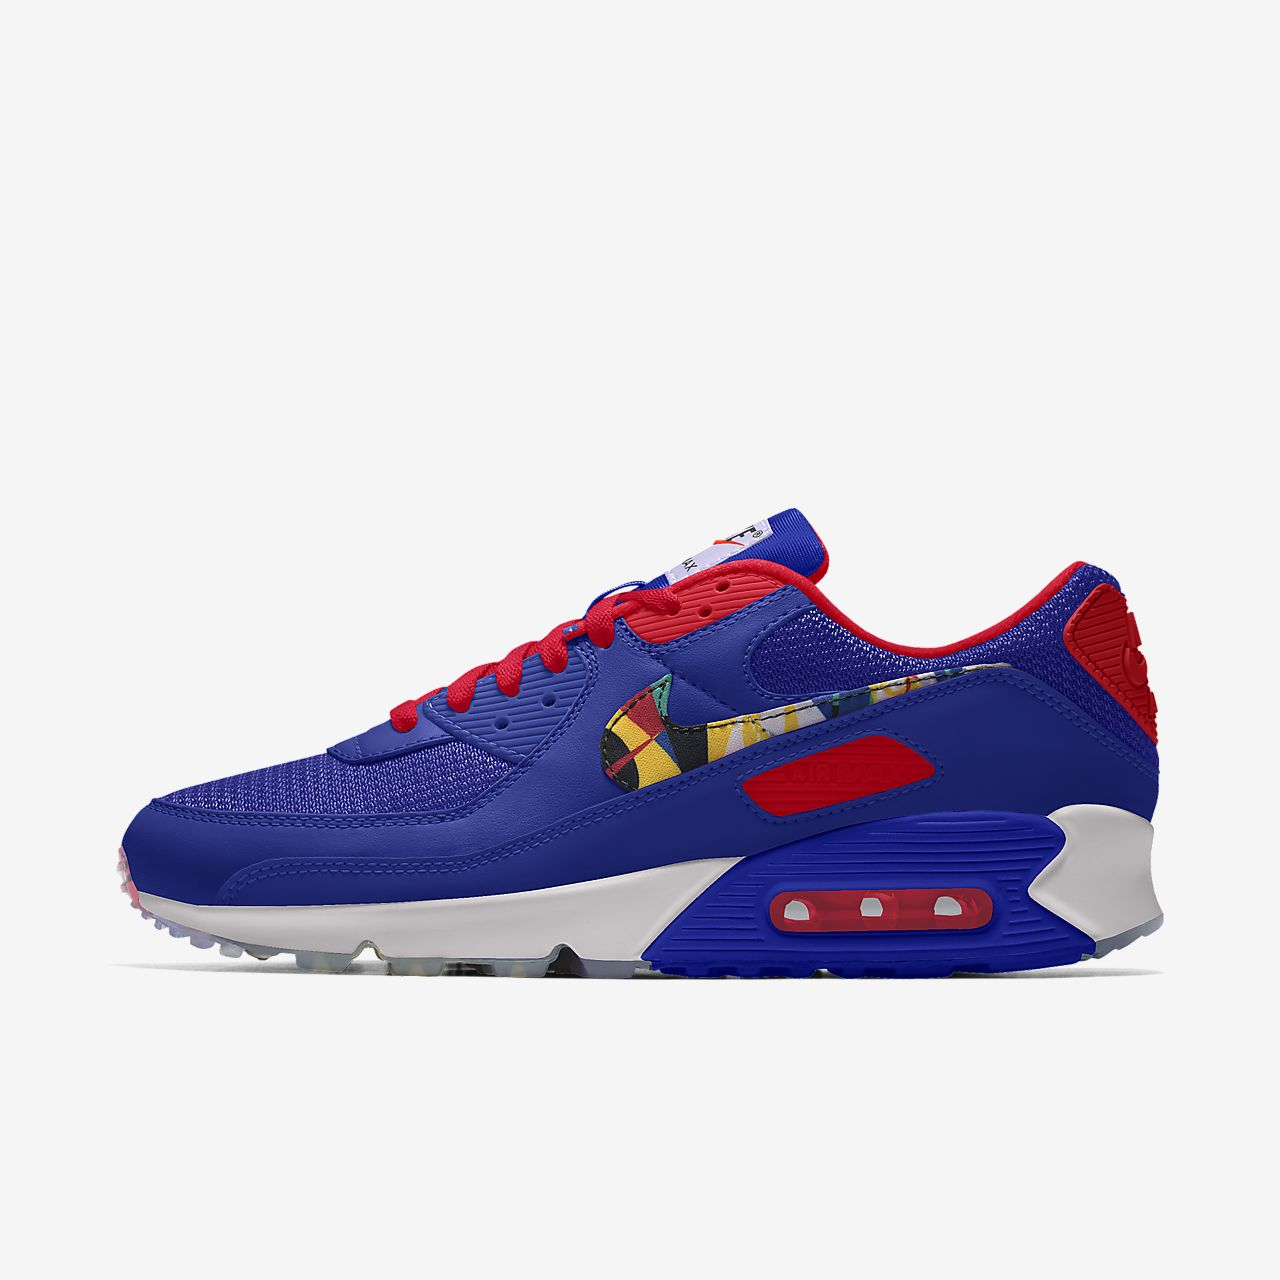 Nike Air Max 90 Premium By You Custom Lifestyle Shoe